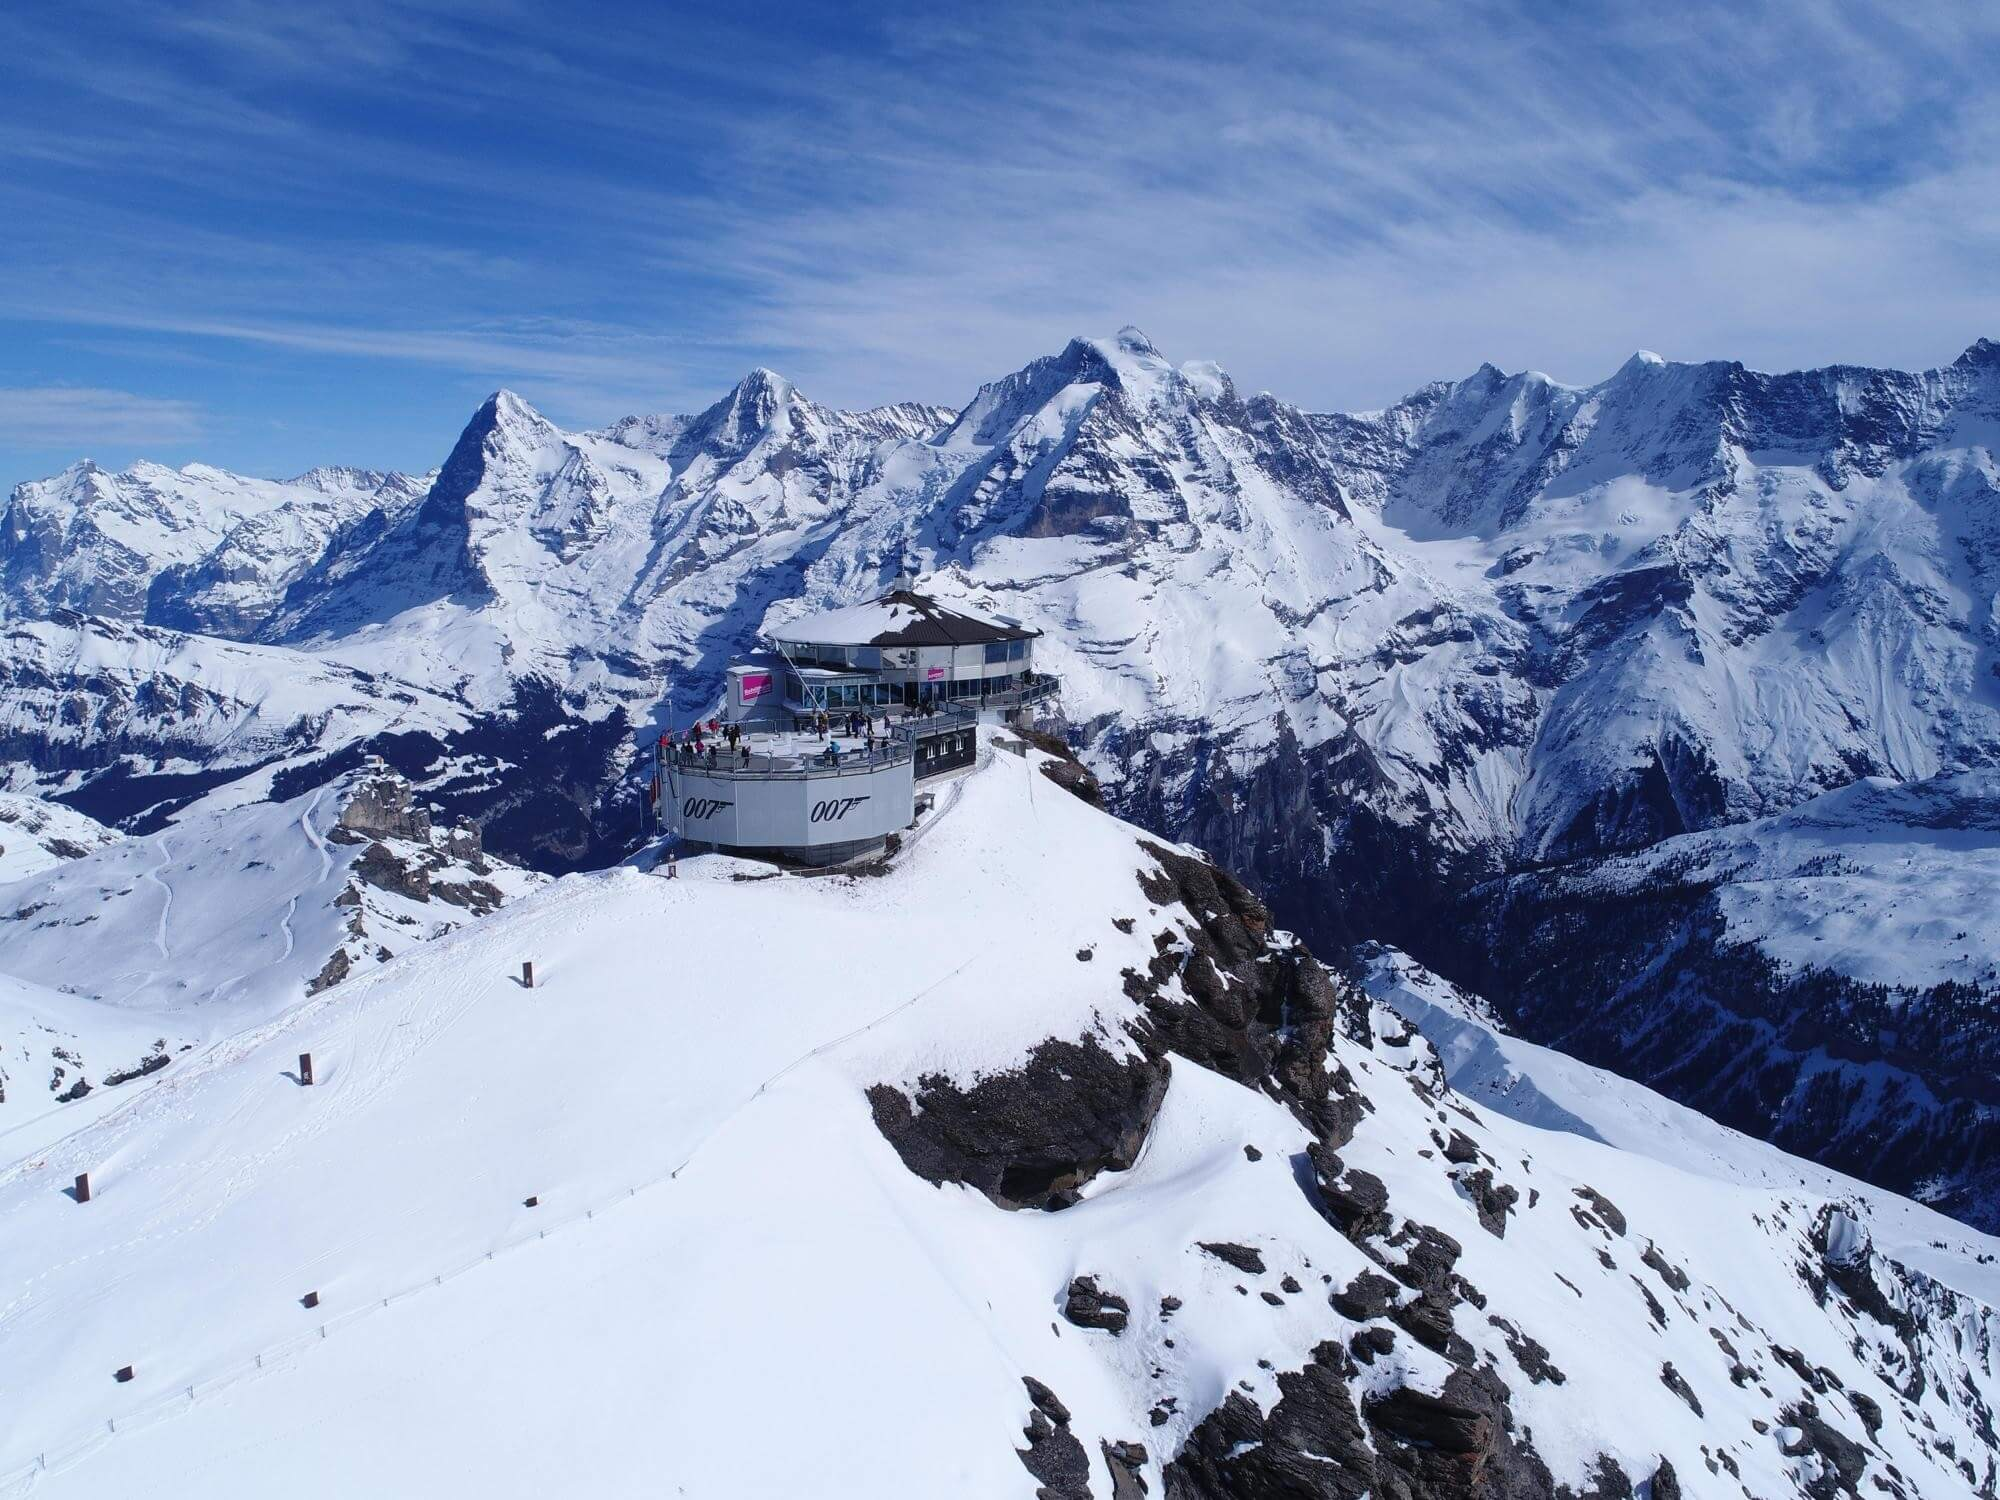 schilthorn-piz-gloria-winter-panorama